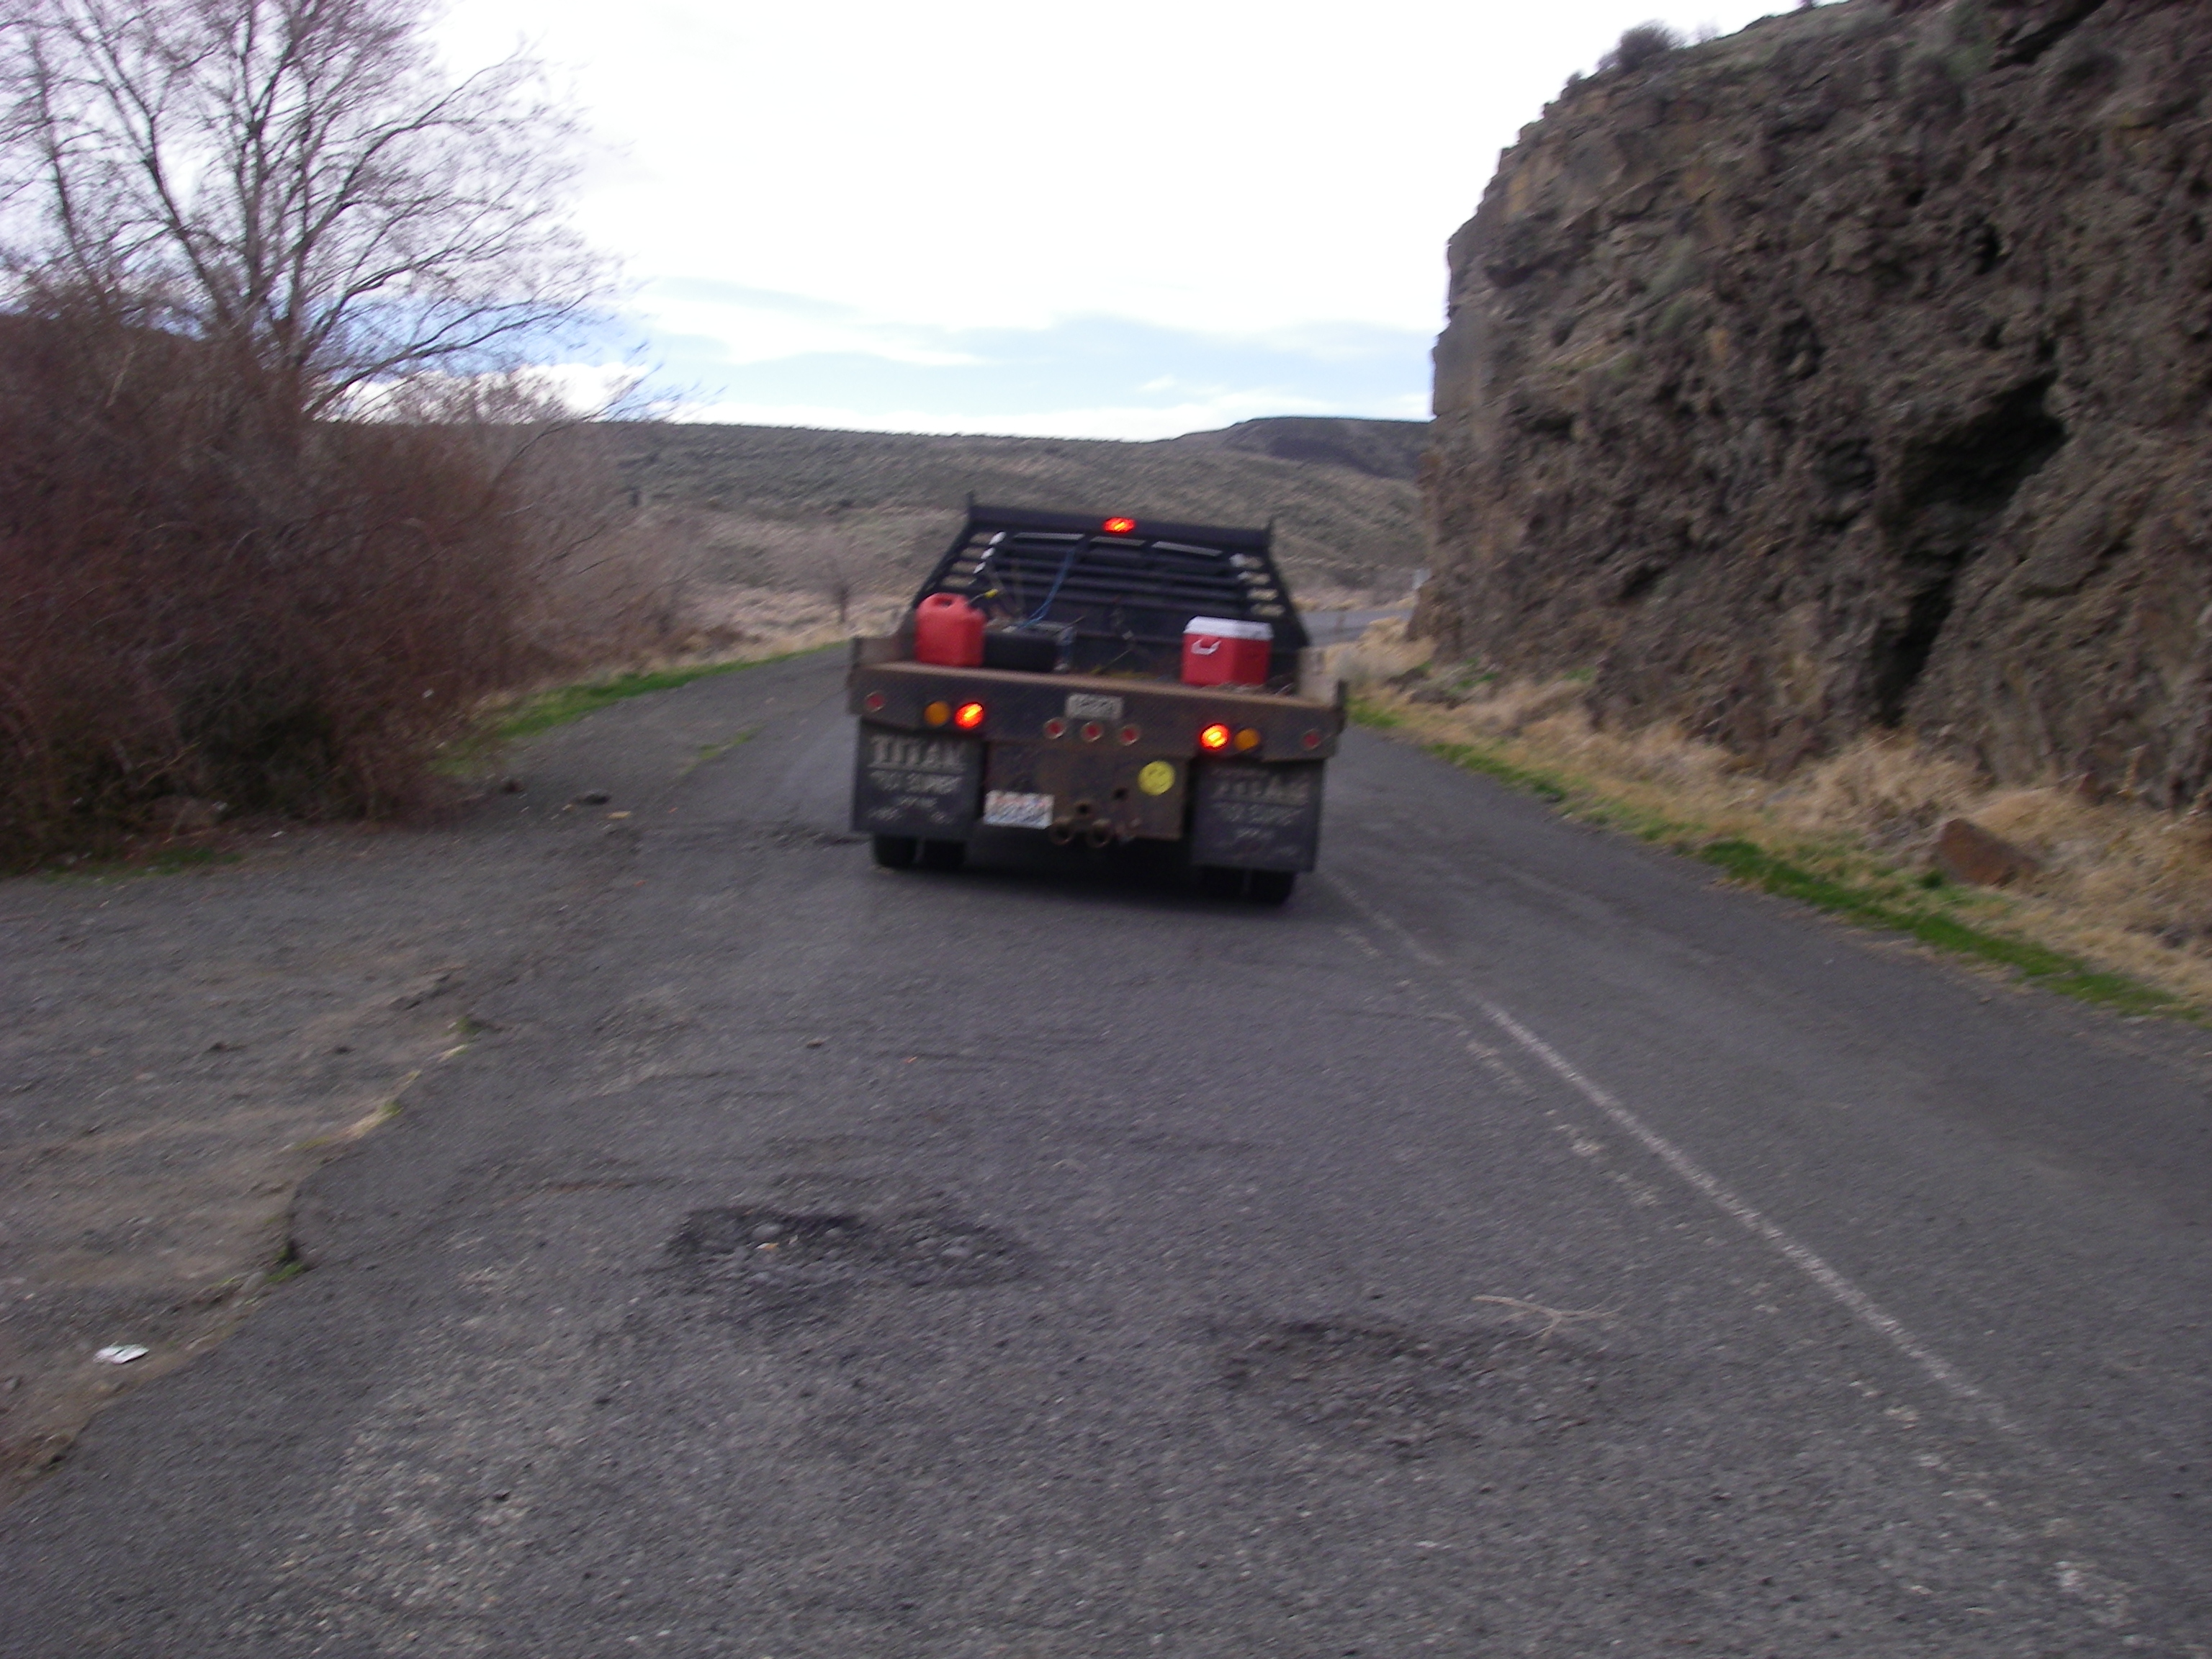 Lucky and random, a friendly couple helps Paul portage around Wanapum Dam in the middle of nowhere.